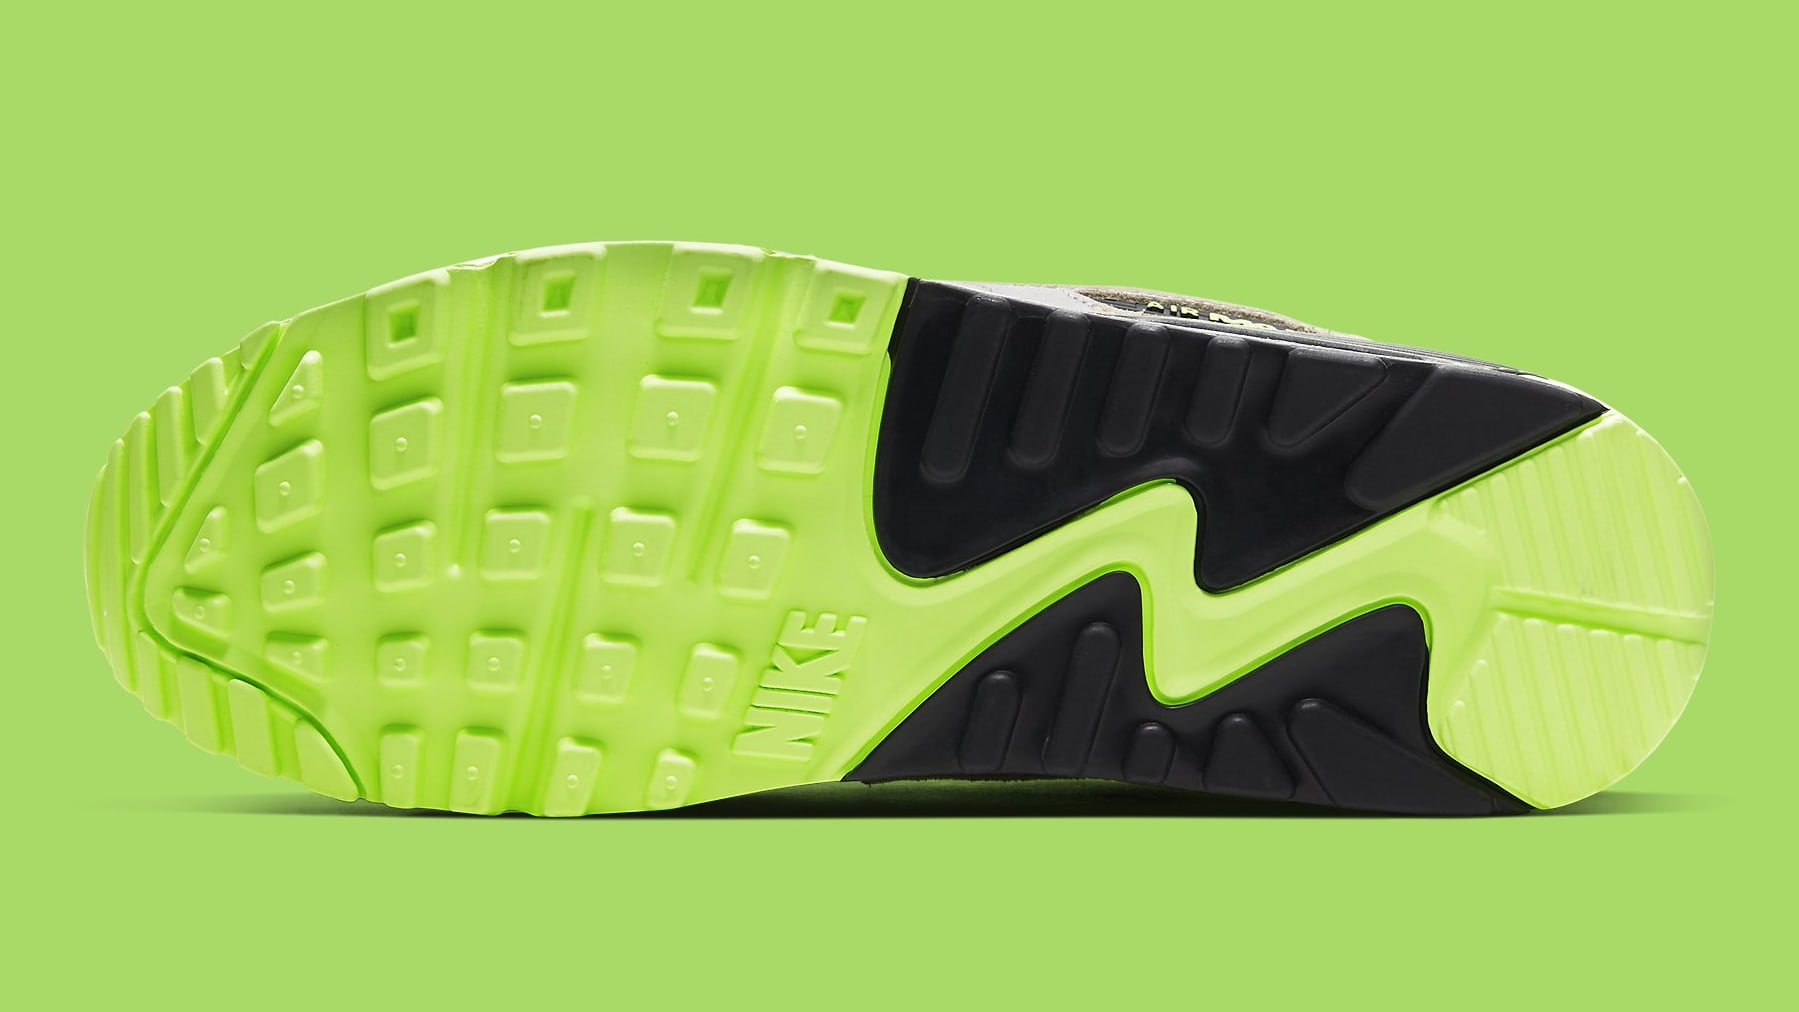 Nike Air Max 90 Volt Duck Camo Ghost Green Release Date CW4039-300 Sole